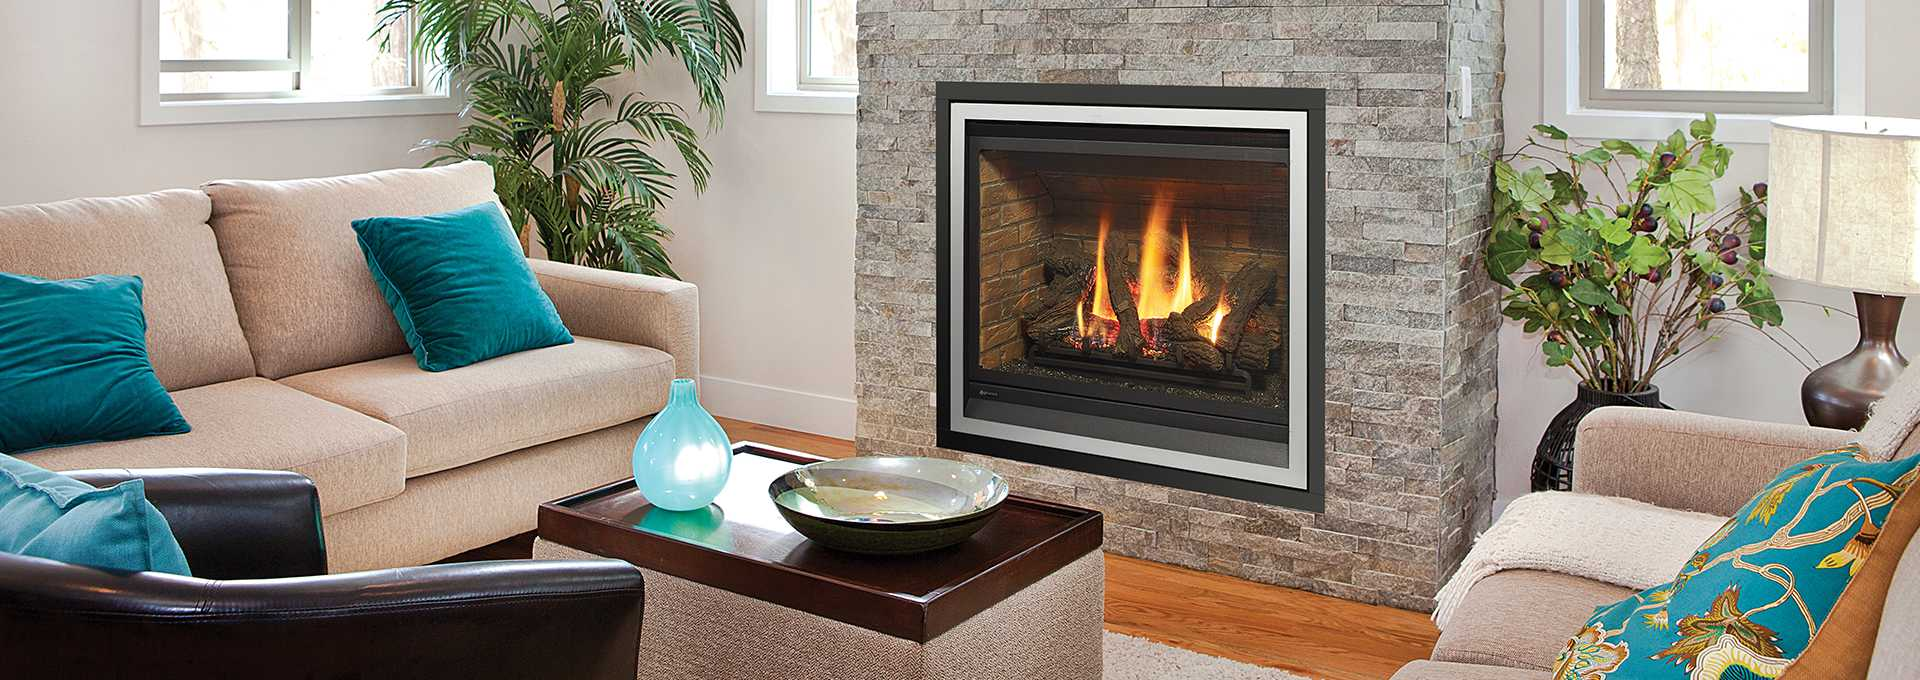 vent direct modern free fireplace products gas contemporary inserts insert alpha arched andirons fireplaces round